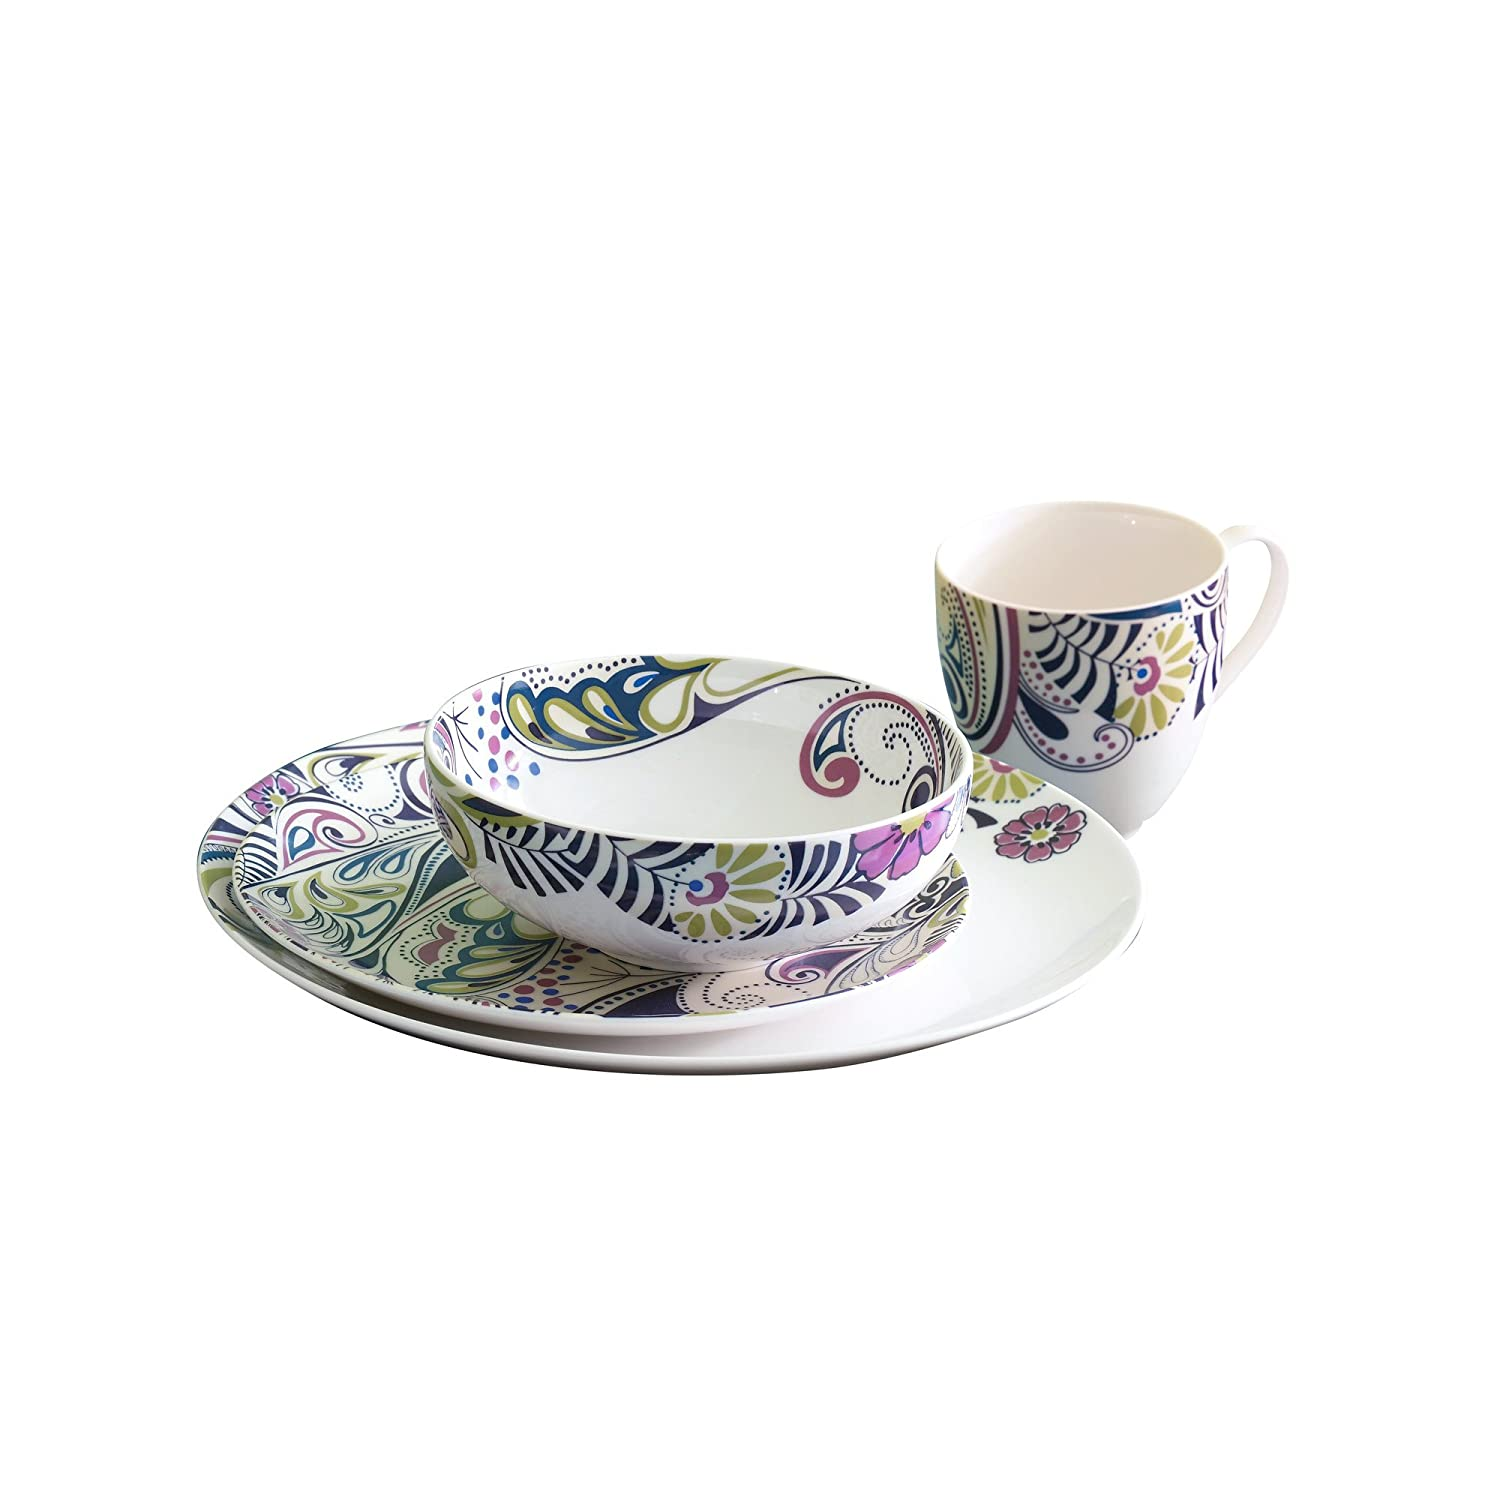 16e9cced3f108 Denby Monsoon Cosmic Boxed Tableware Set